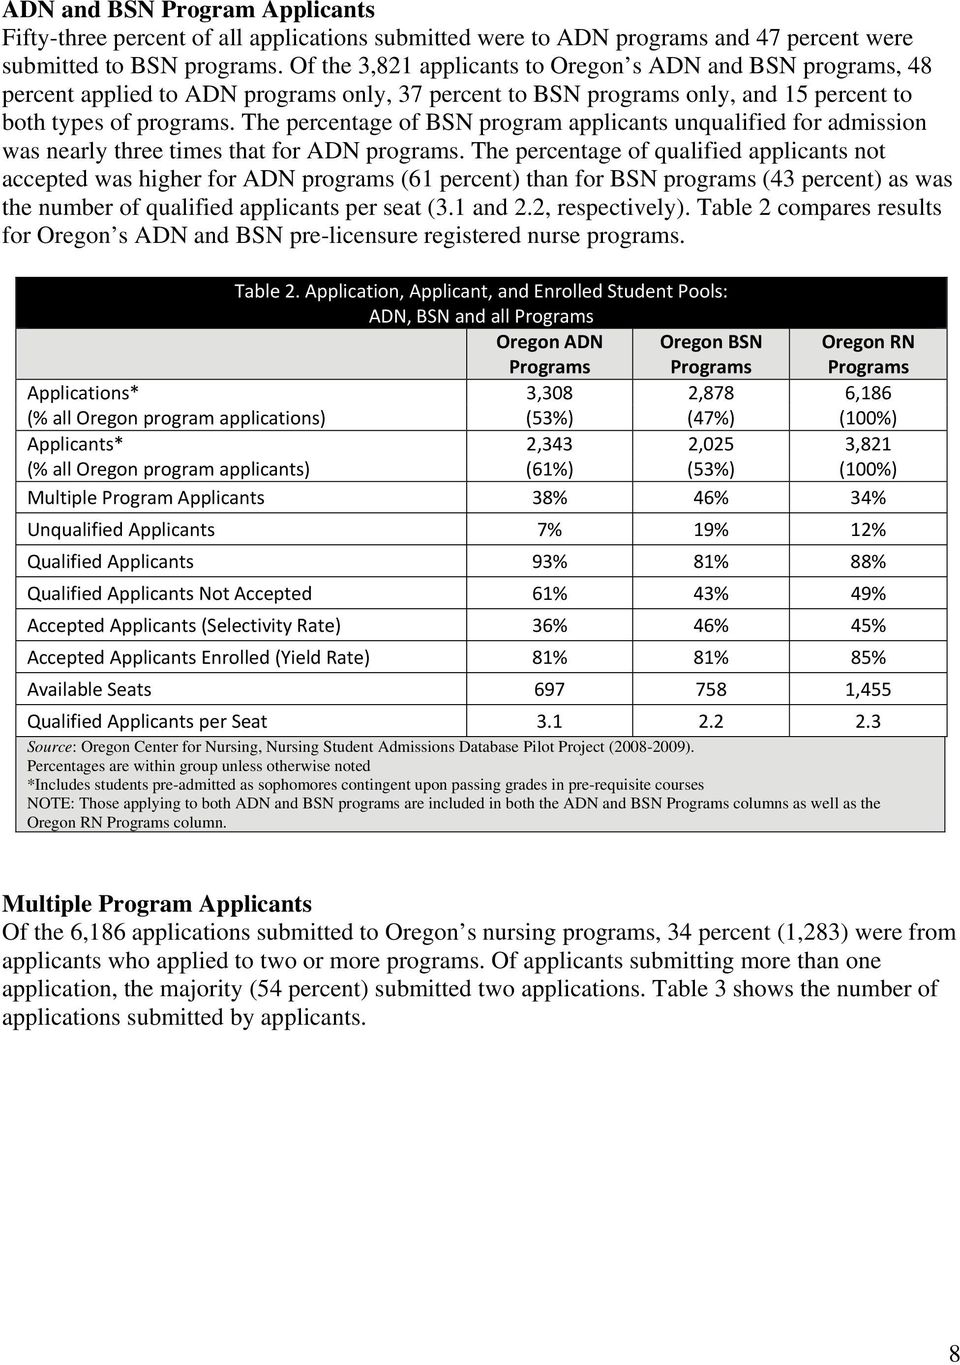 The percentage of BSN program applicants unqualified for admission was nearly three times that for ADN programs.